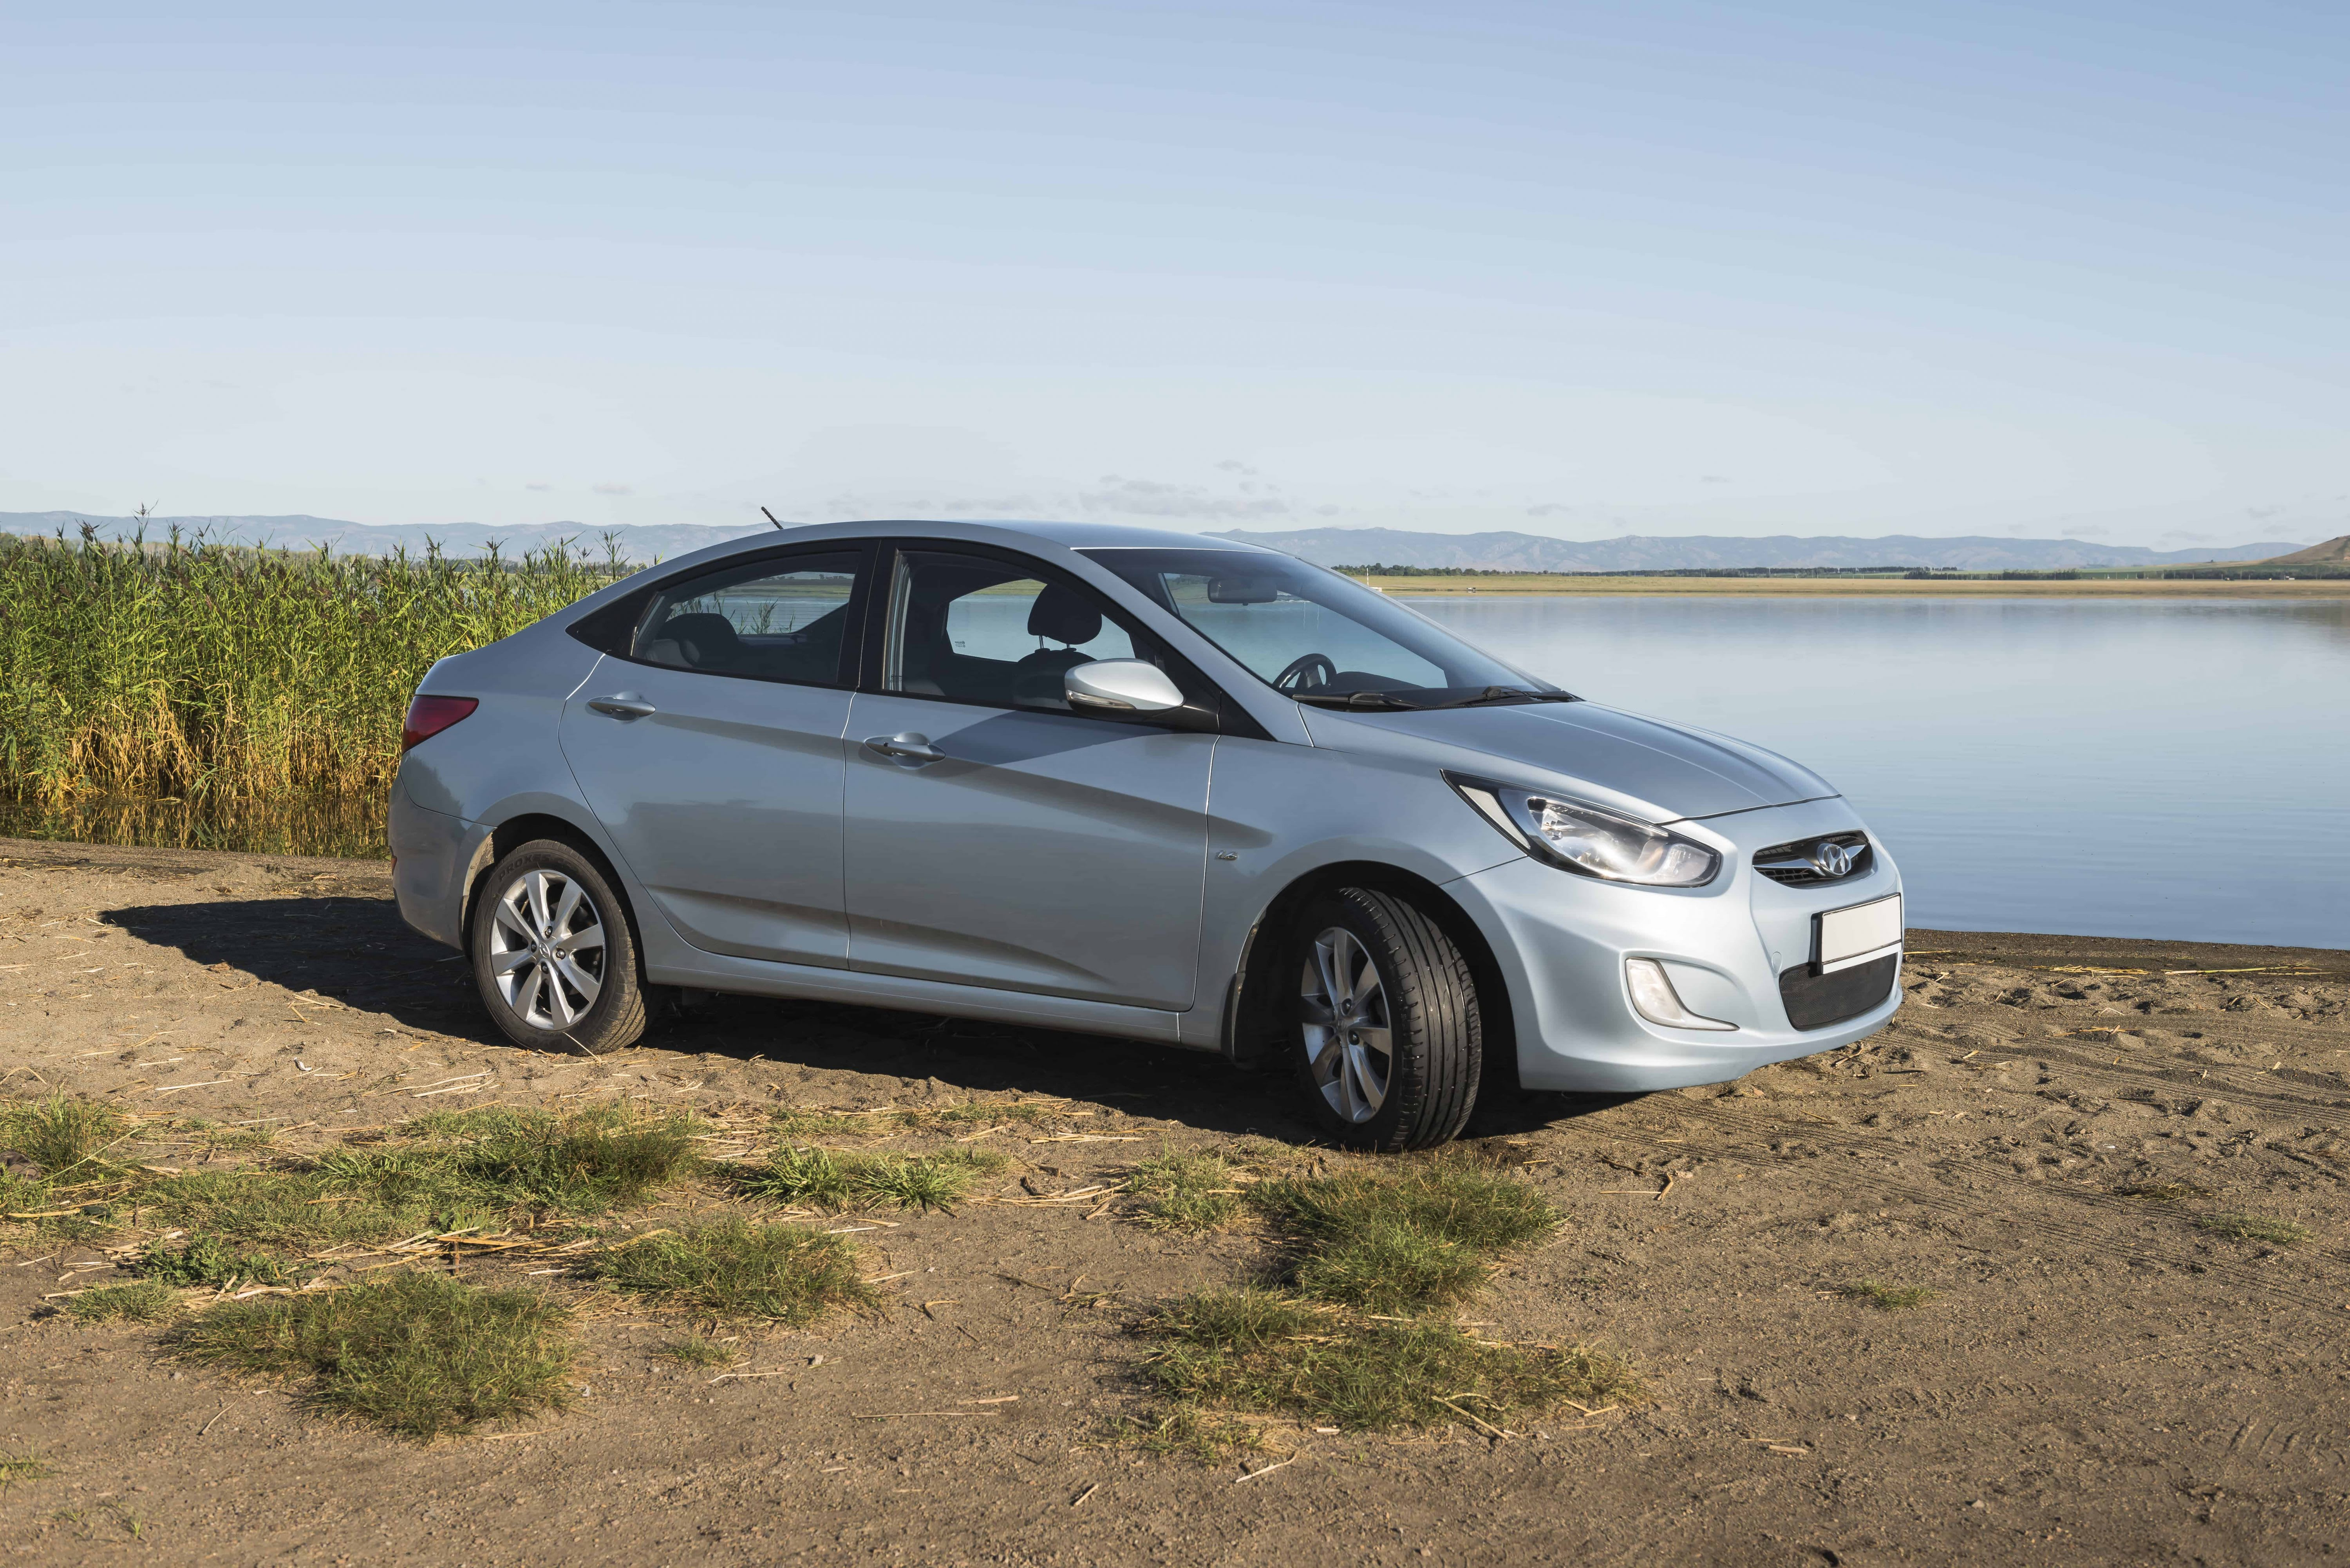 Hyundai recalls over 200,000 cars for interior fire hazard